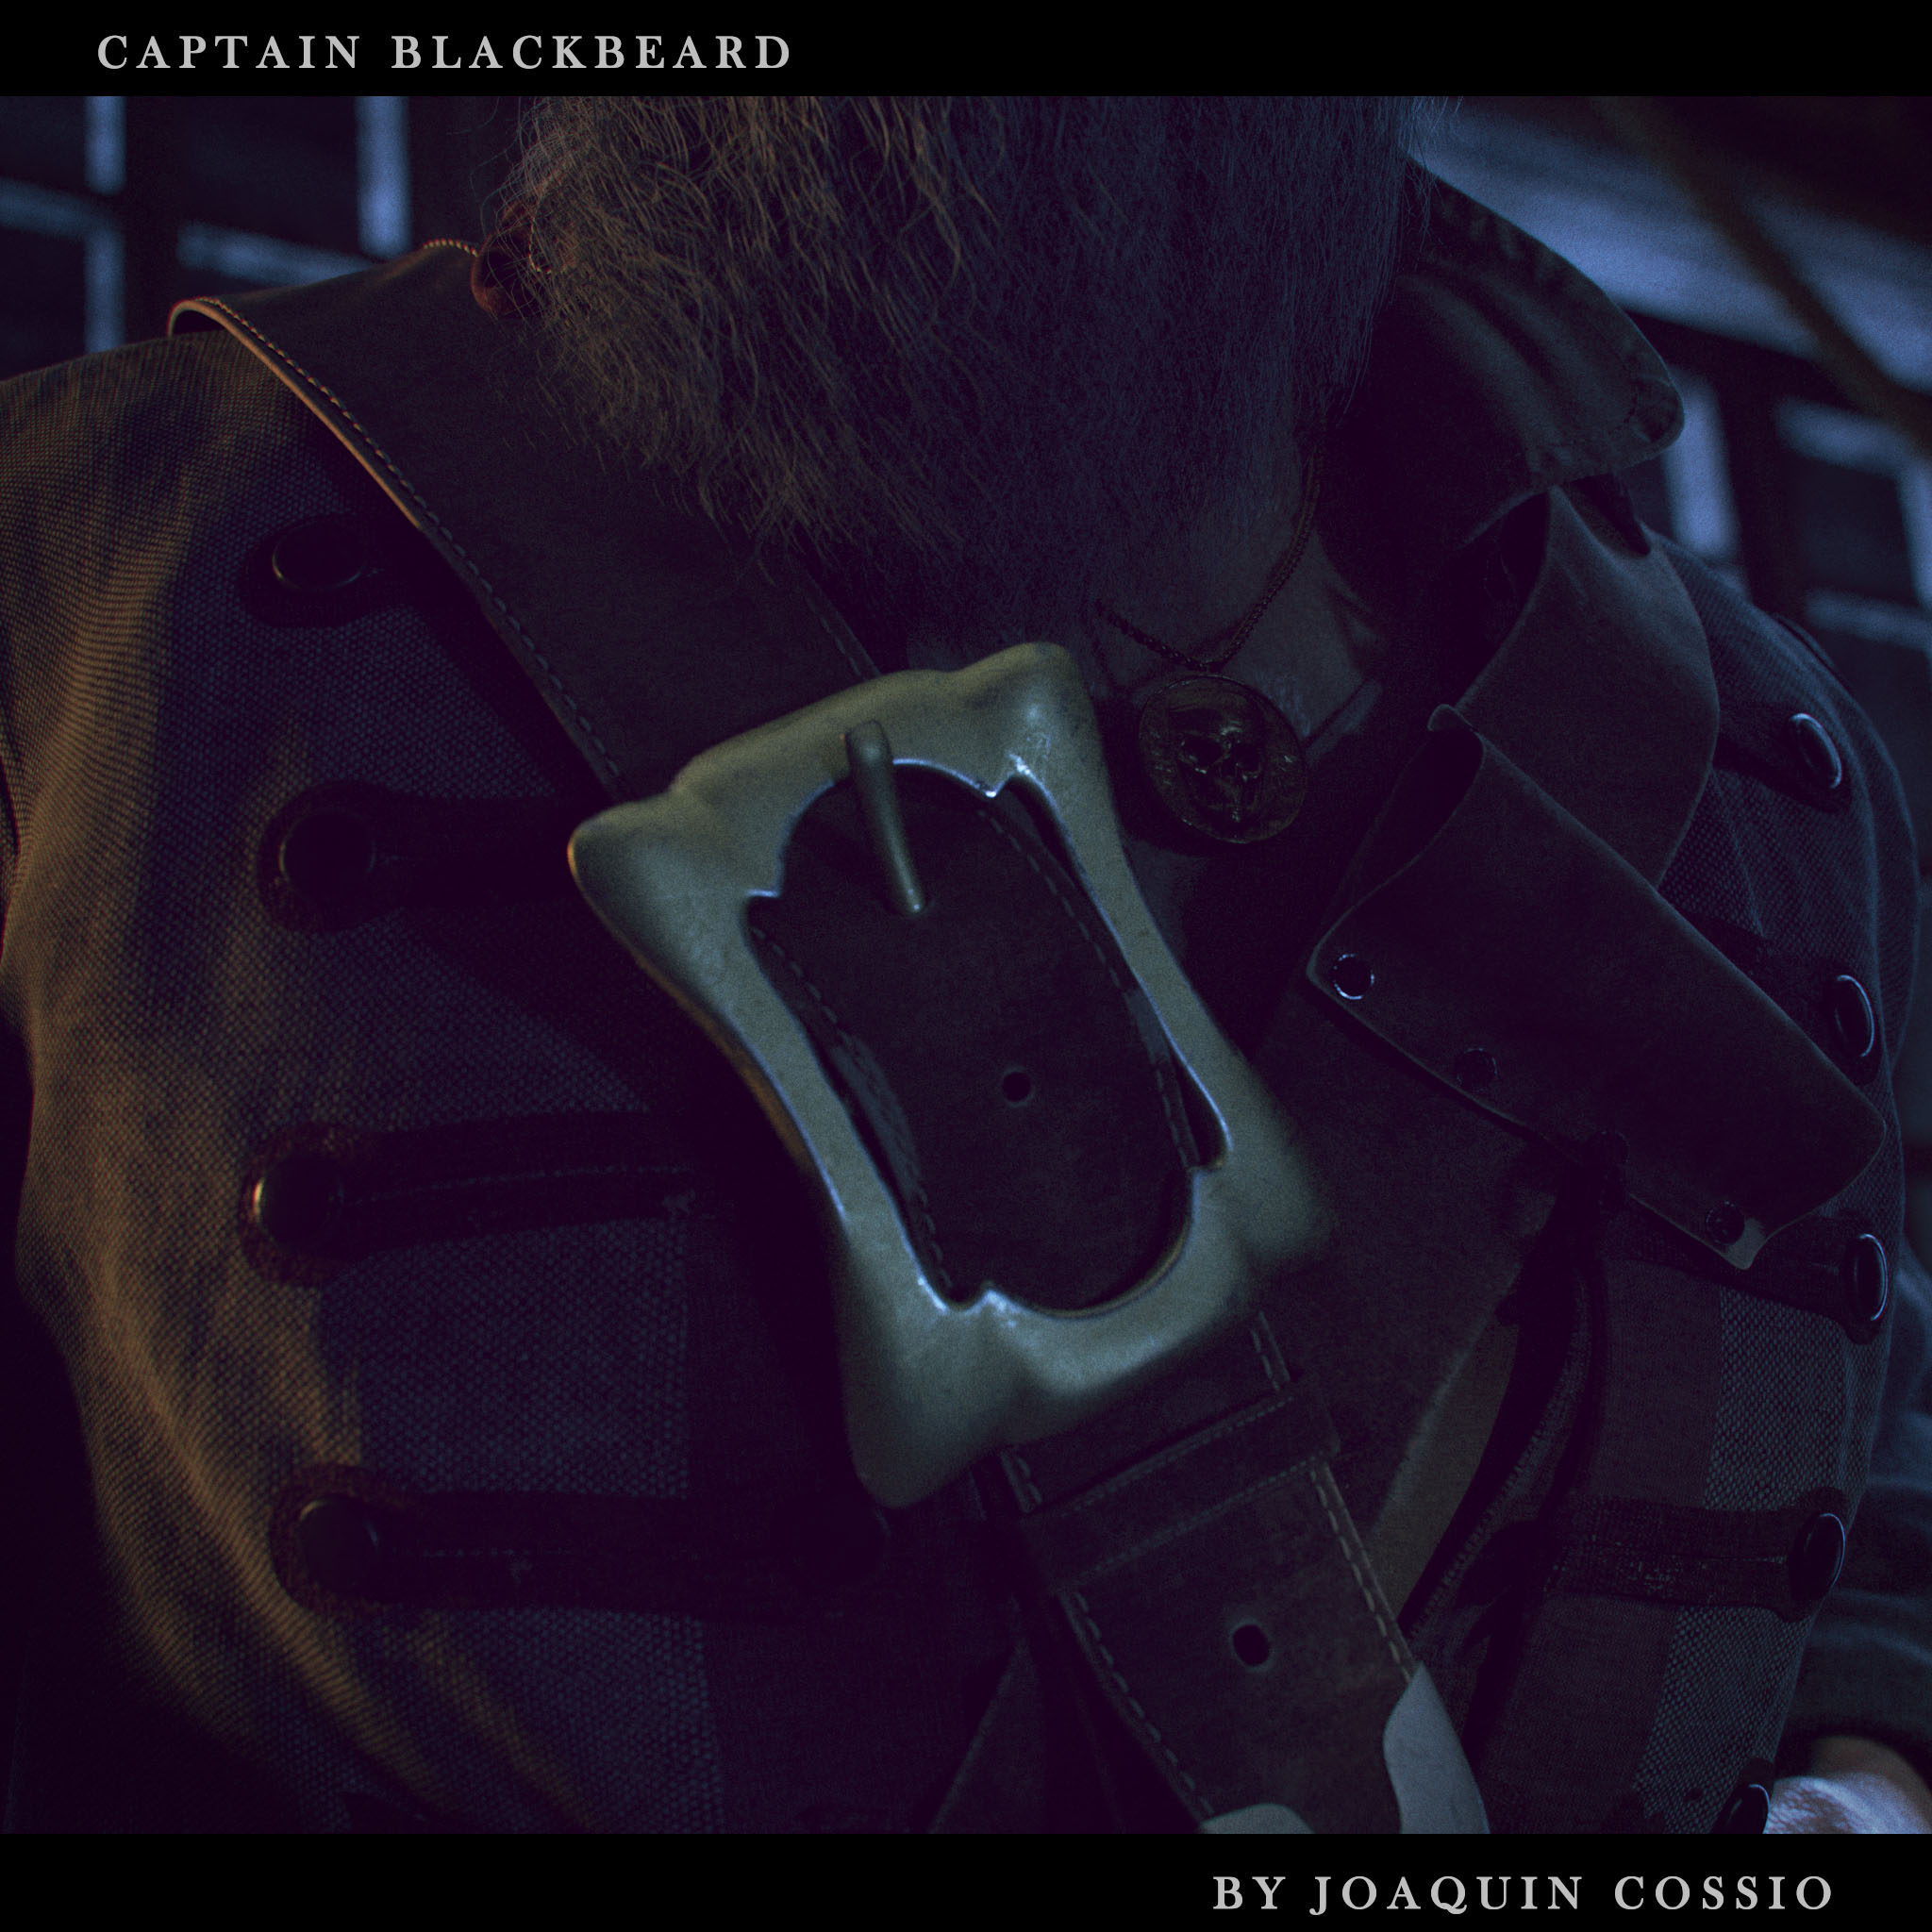 Blackbead_by jcossio2.jpg